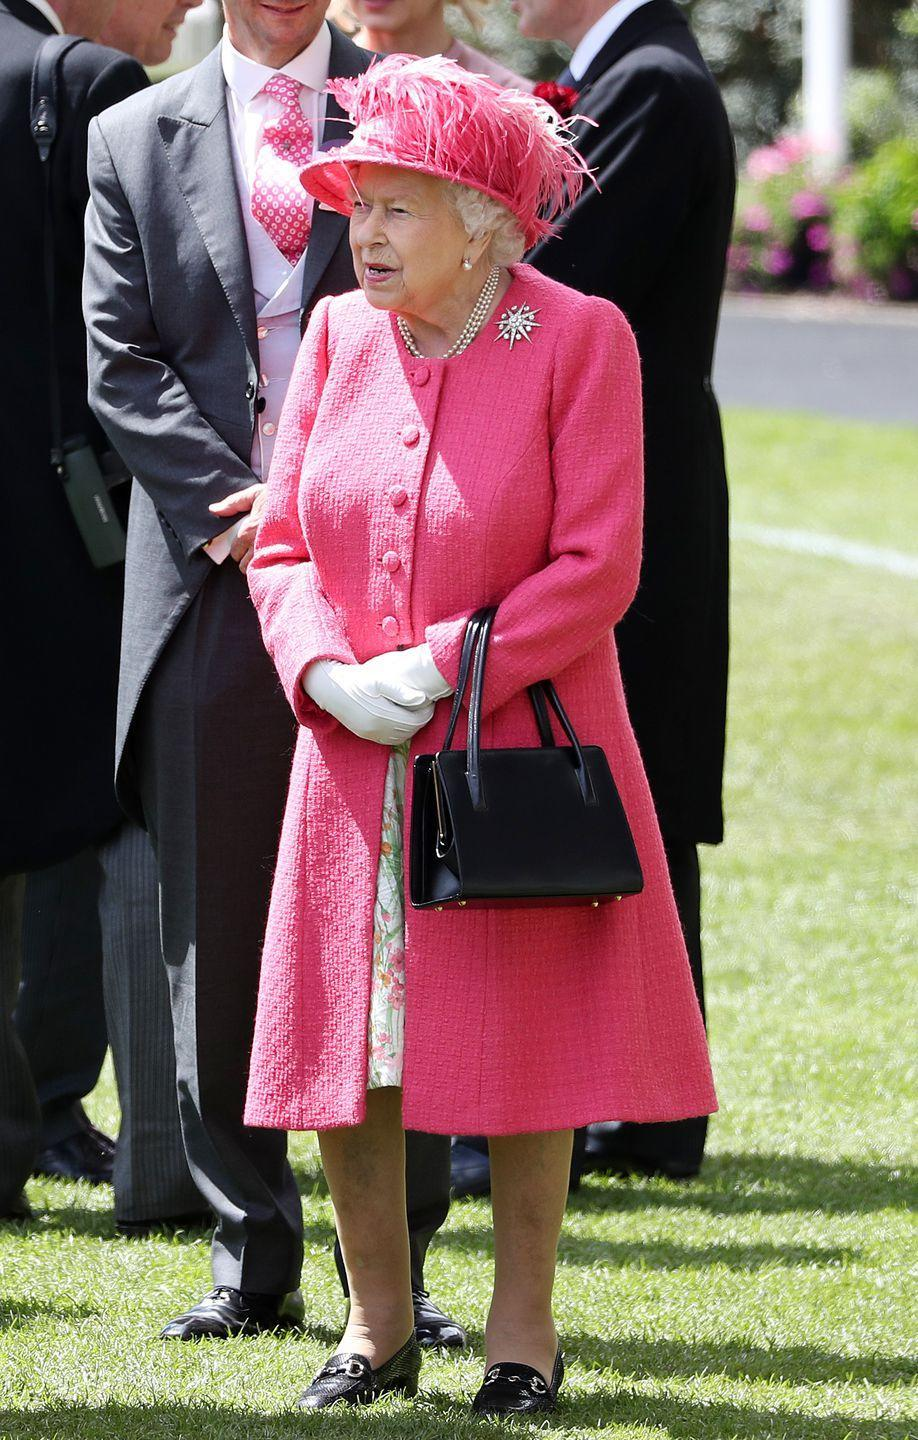 <p>Here's a full-length look at the Queen's outfit today, the vibrant shade is a departure from the blue hues she chose earlier this week. </p>